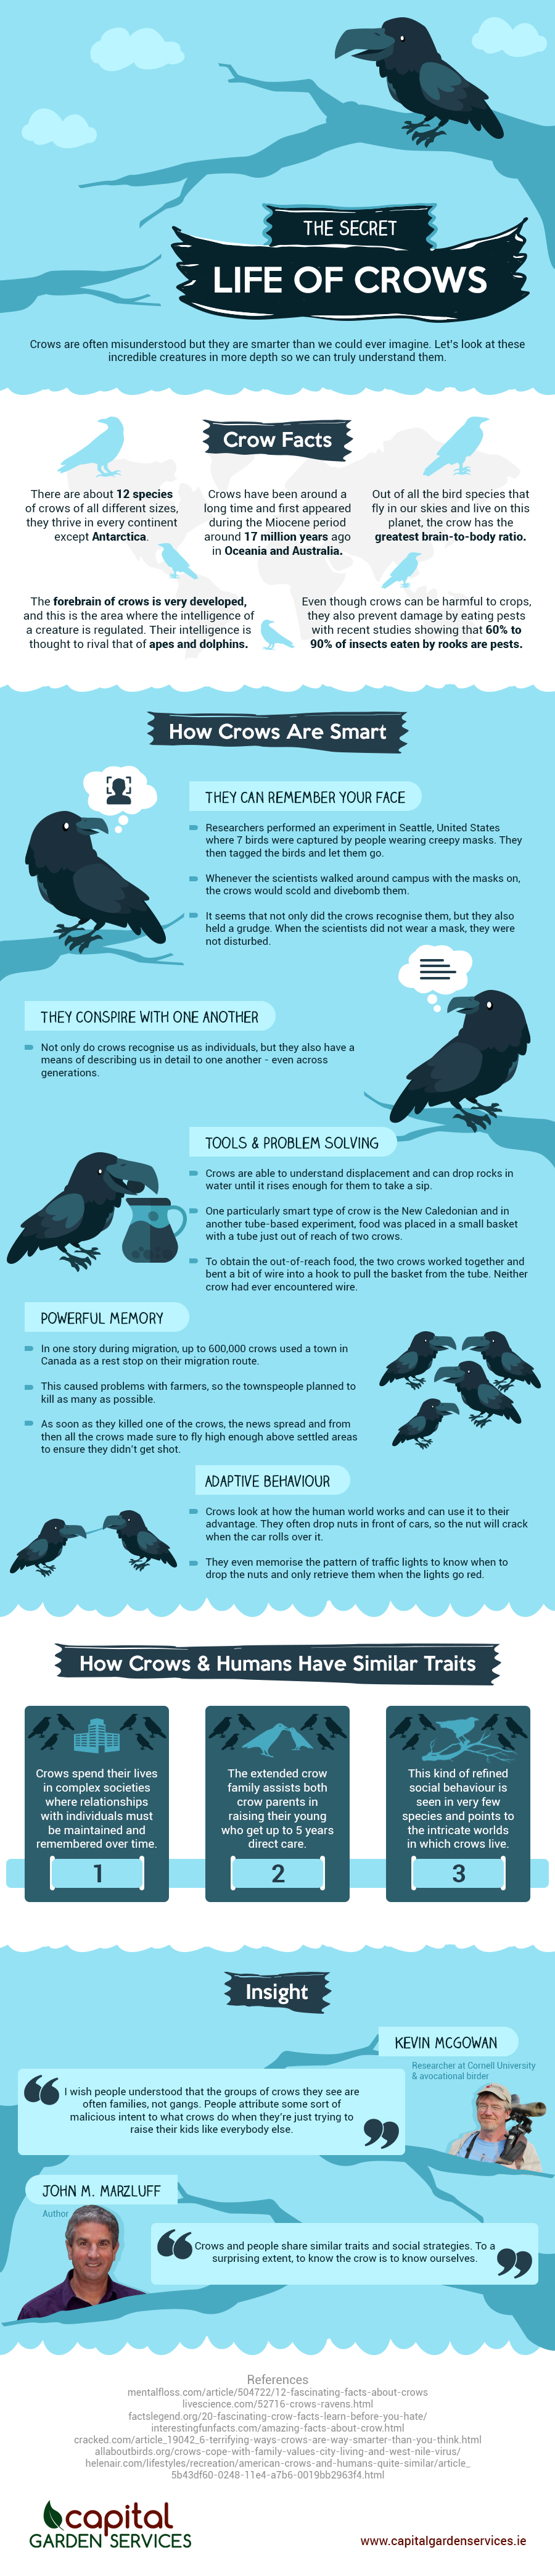 The Secret Life of Crows Infographic